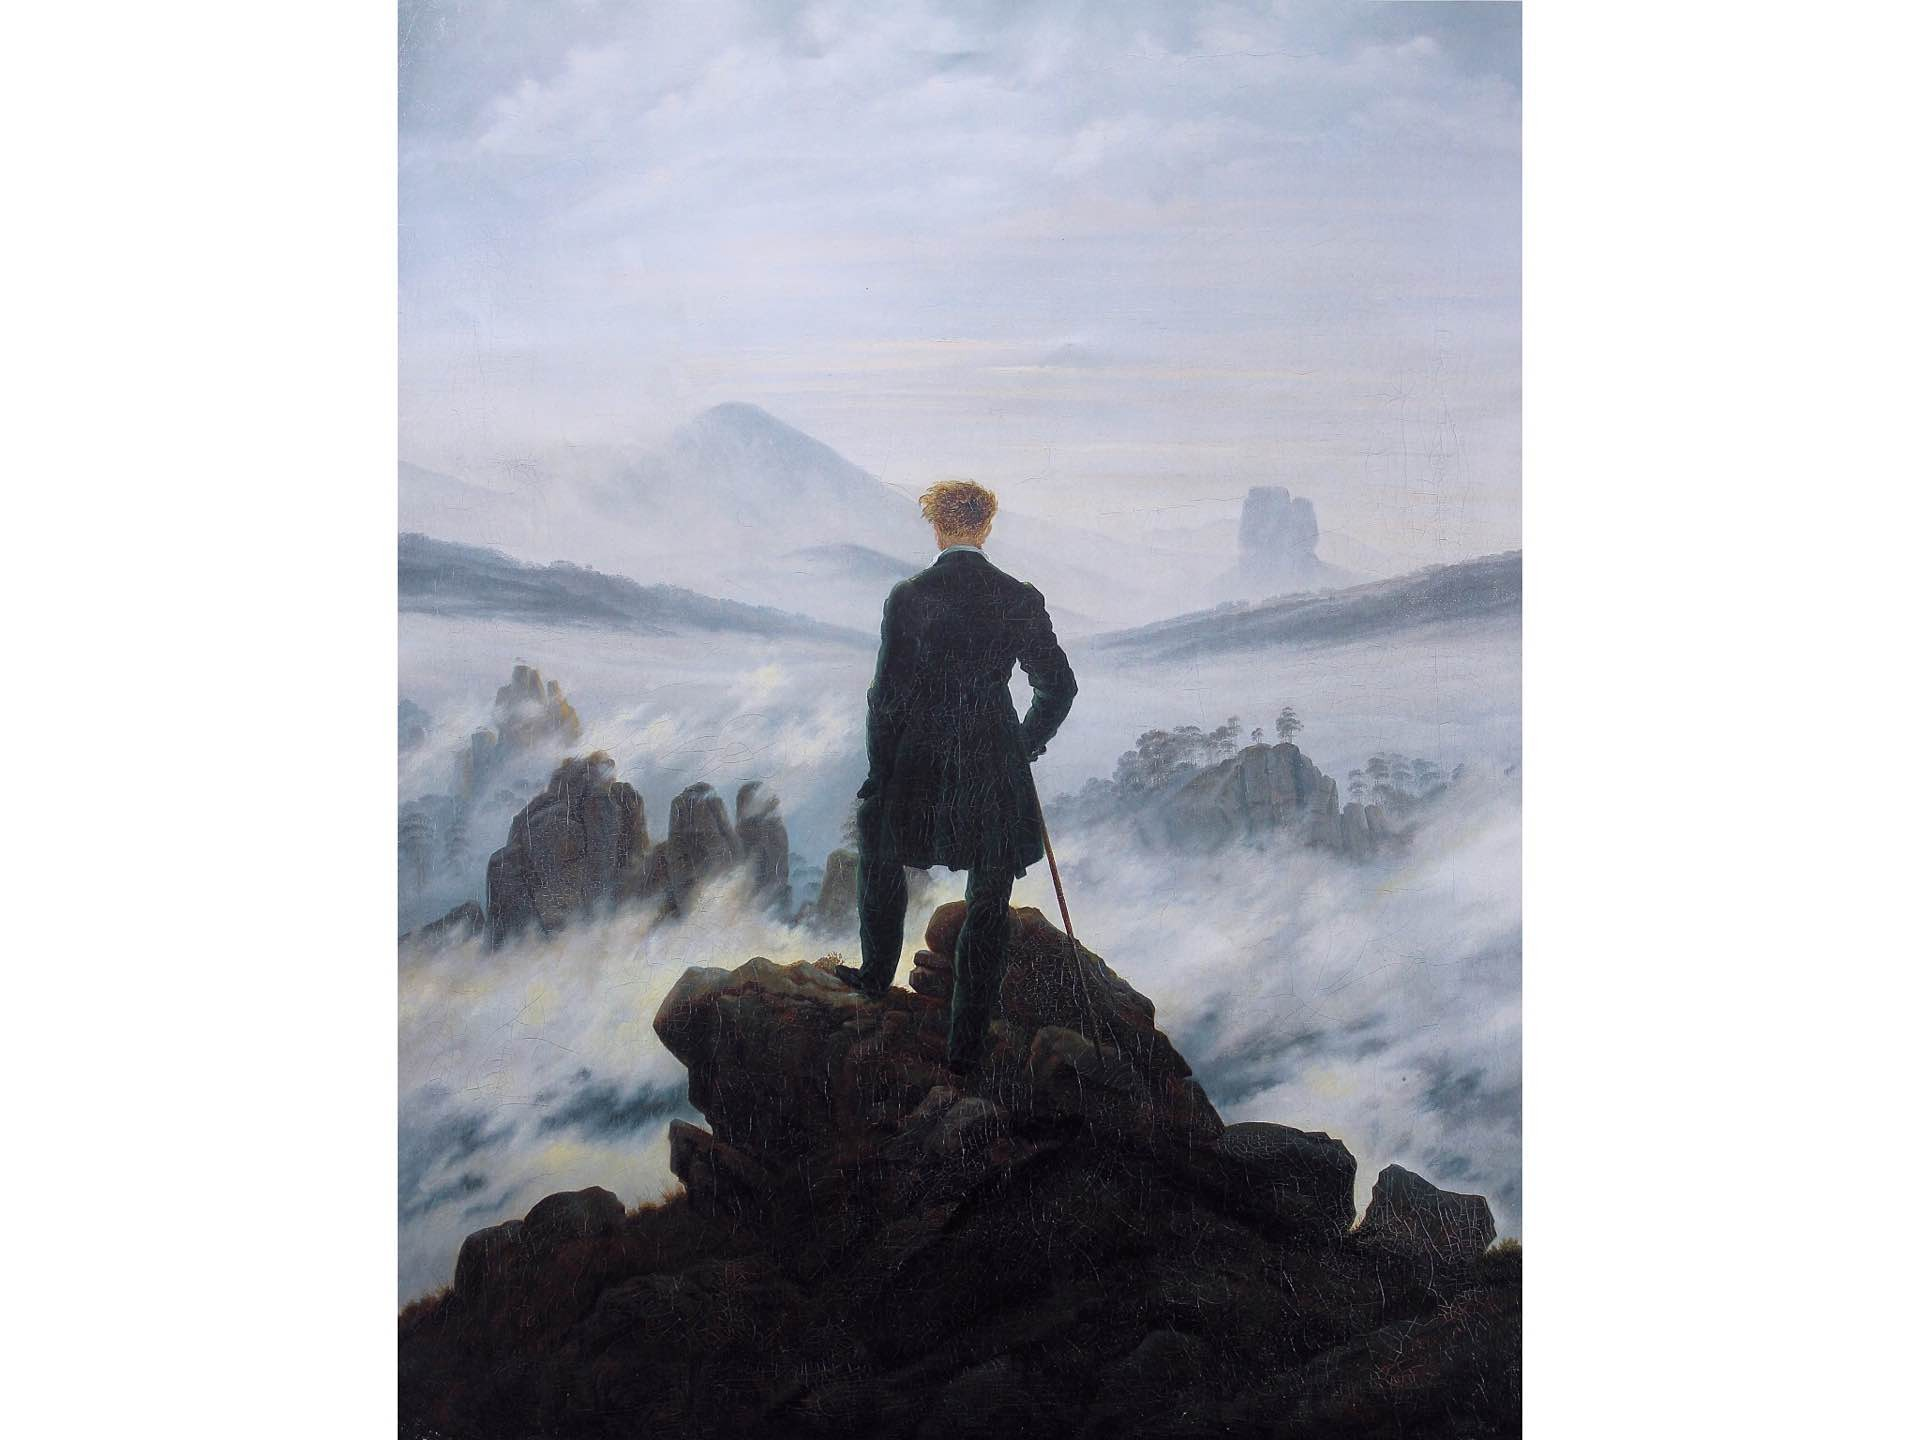 Painting: *[Wanderer Above the Sea of Fog](https://en.wikipedia.org/wiki/Wanderer_above_the_Sea_of_Fog)* by Caspar David Friedrich (1818)